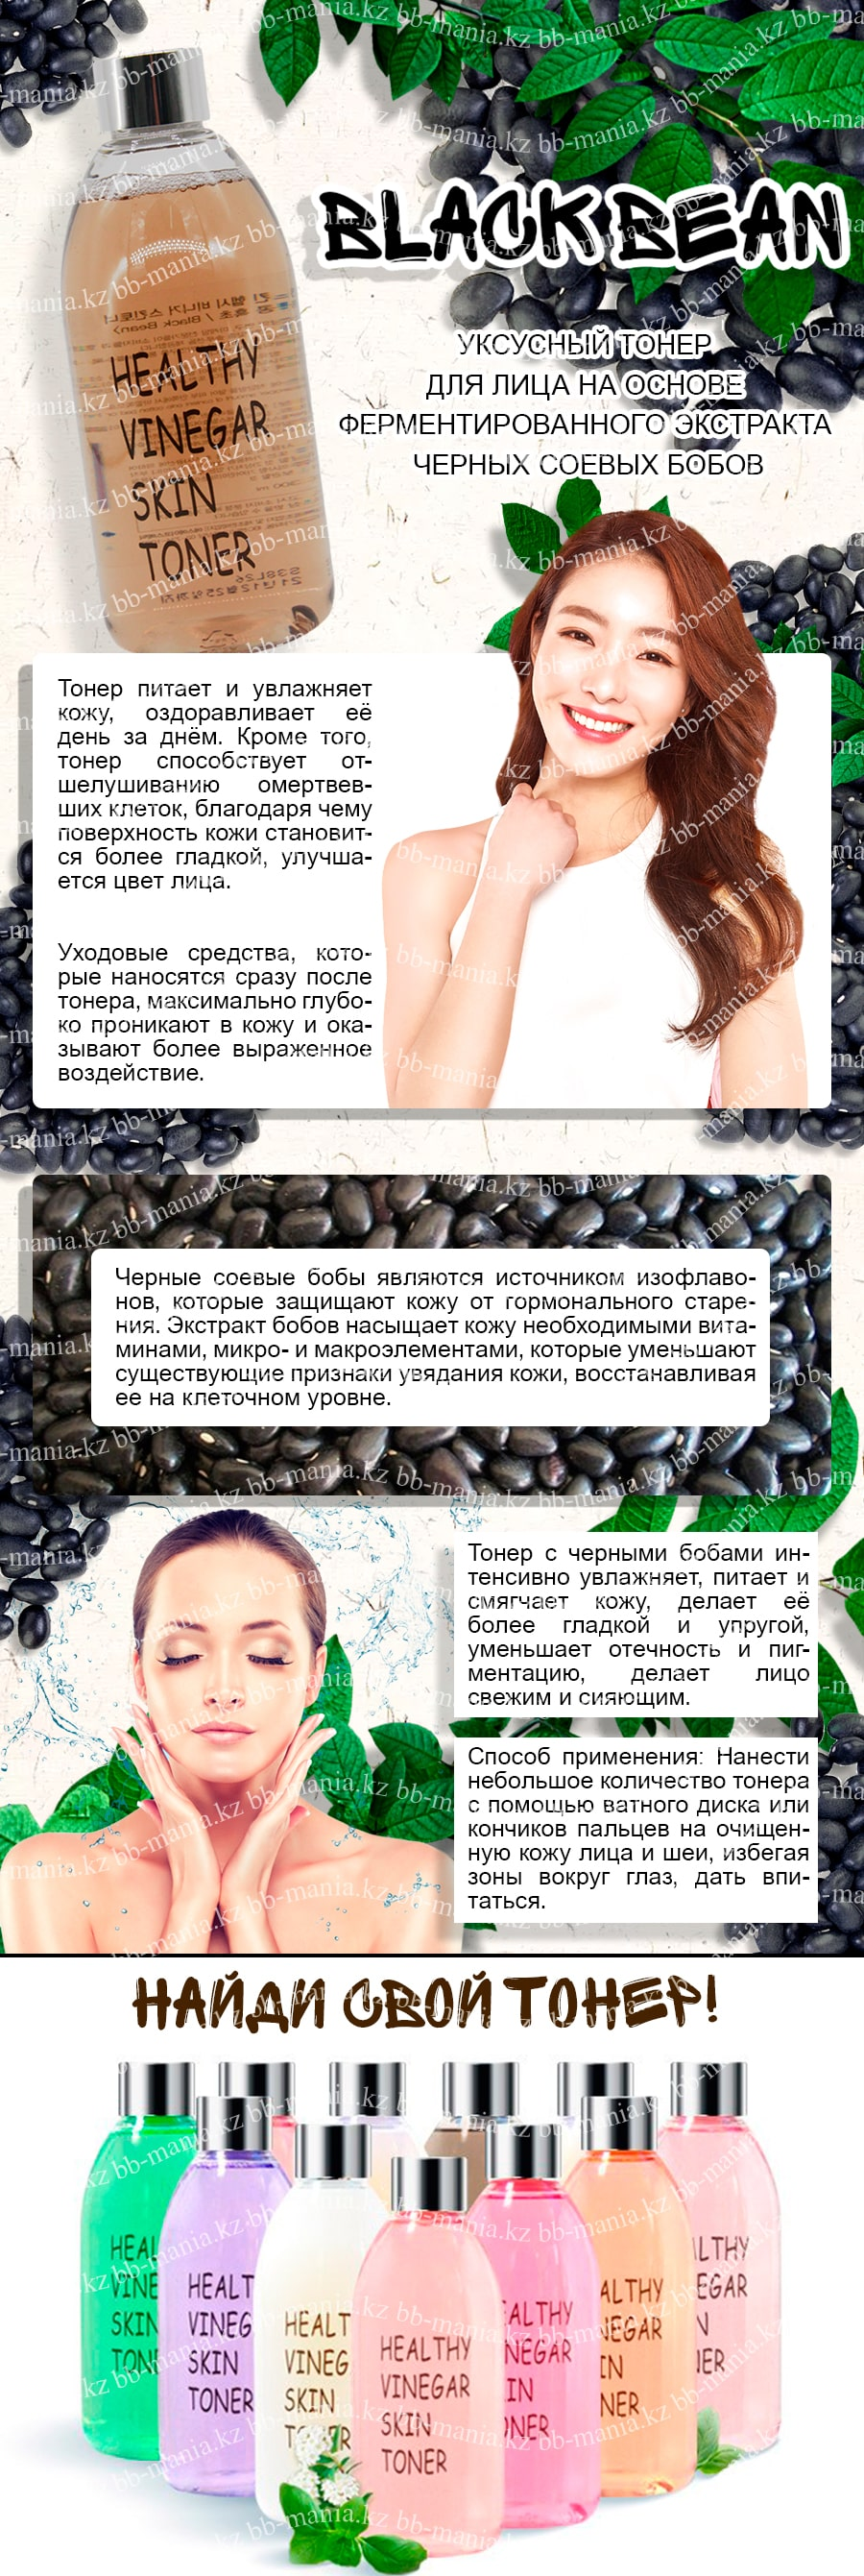 Healthy-Vinegar-Skin-Toner-Black-Bean-[REALSKIN]-min